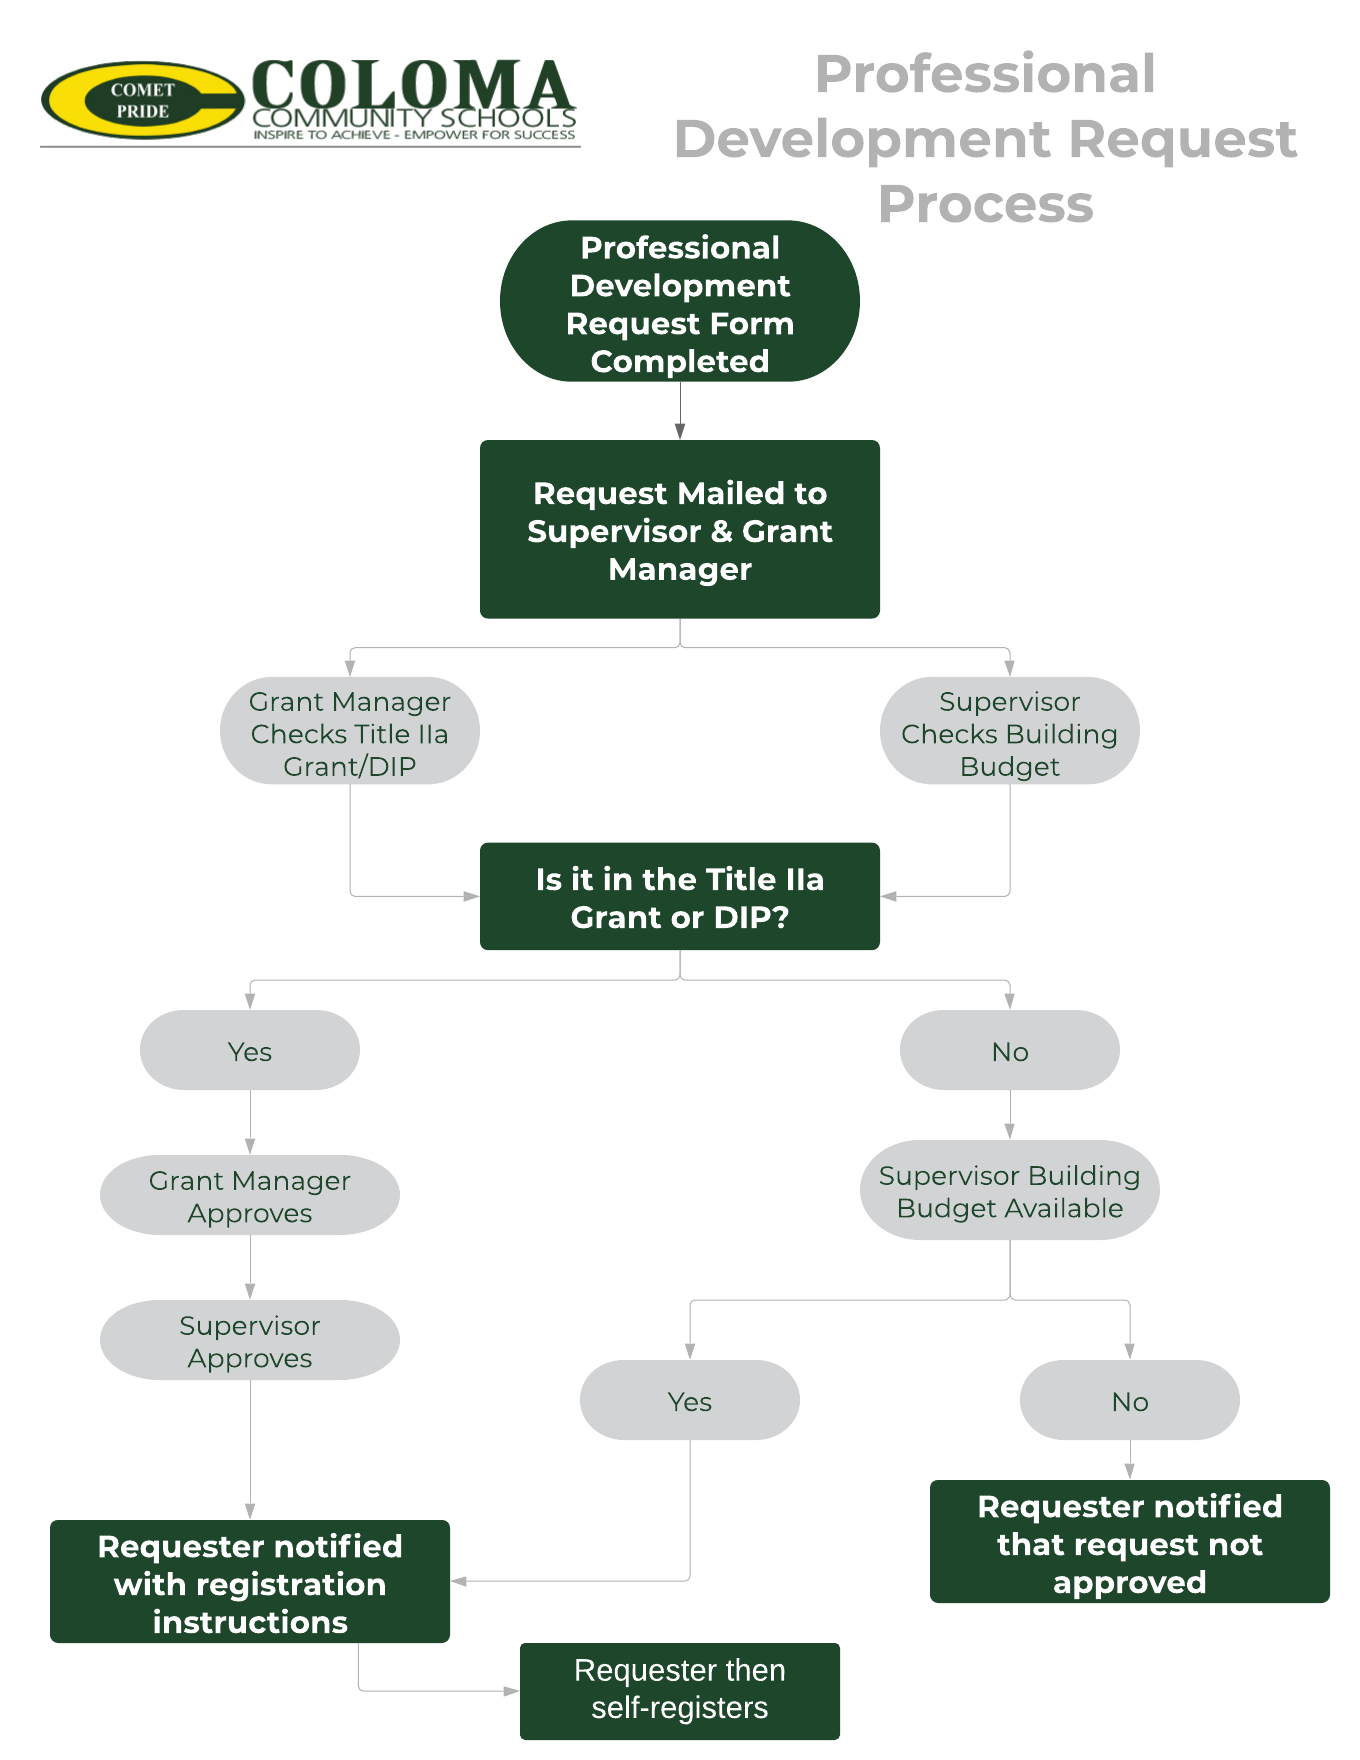 Professional Development Process Flow Chart